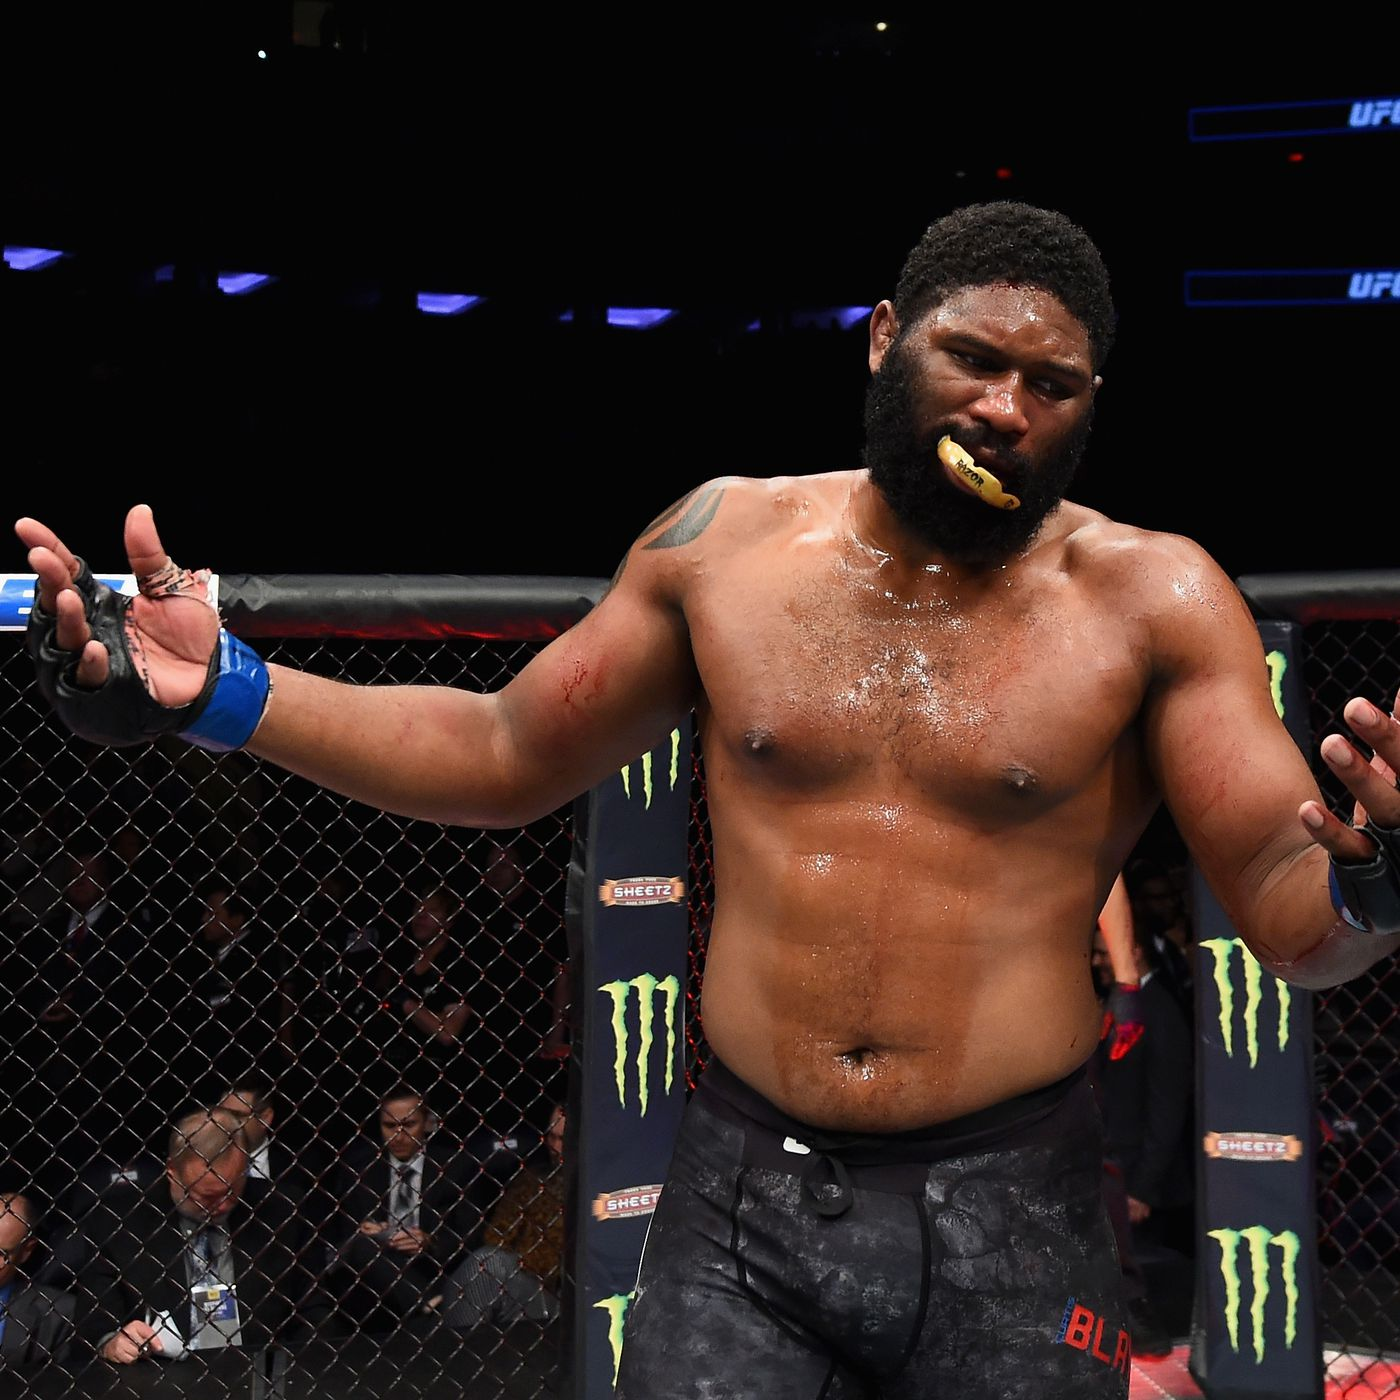 UFC odds: Curtis Blaydes opens as sizable betting favorite over Derrick Lewis for Nov. 28 showdown - MMAmania.com